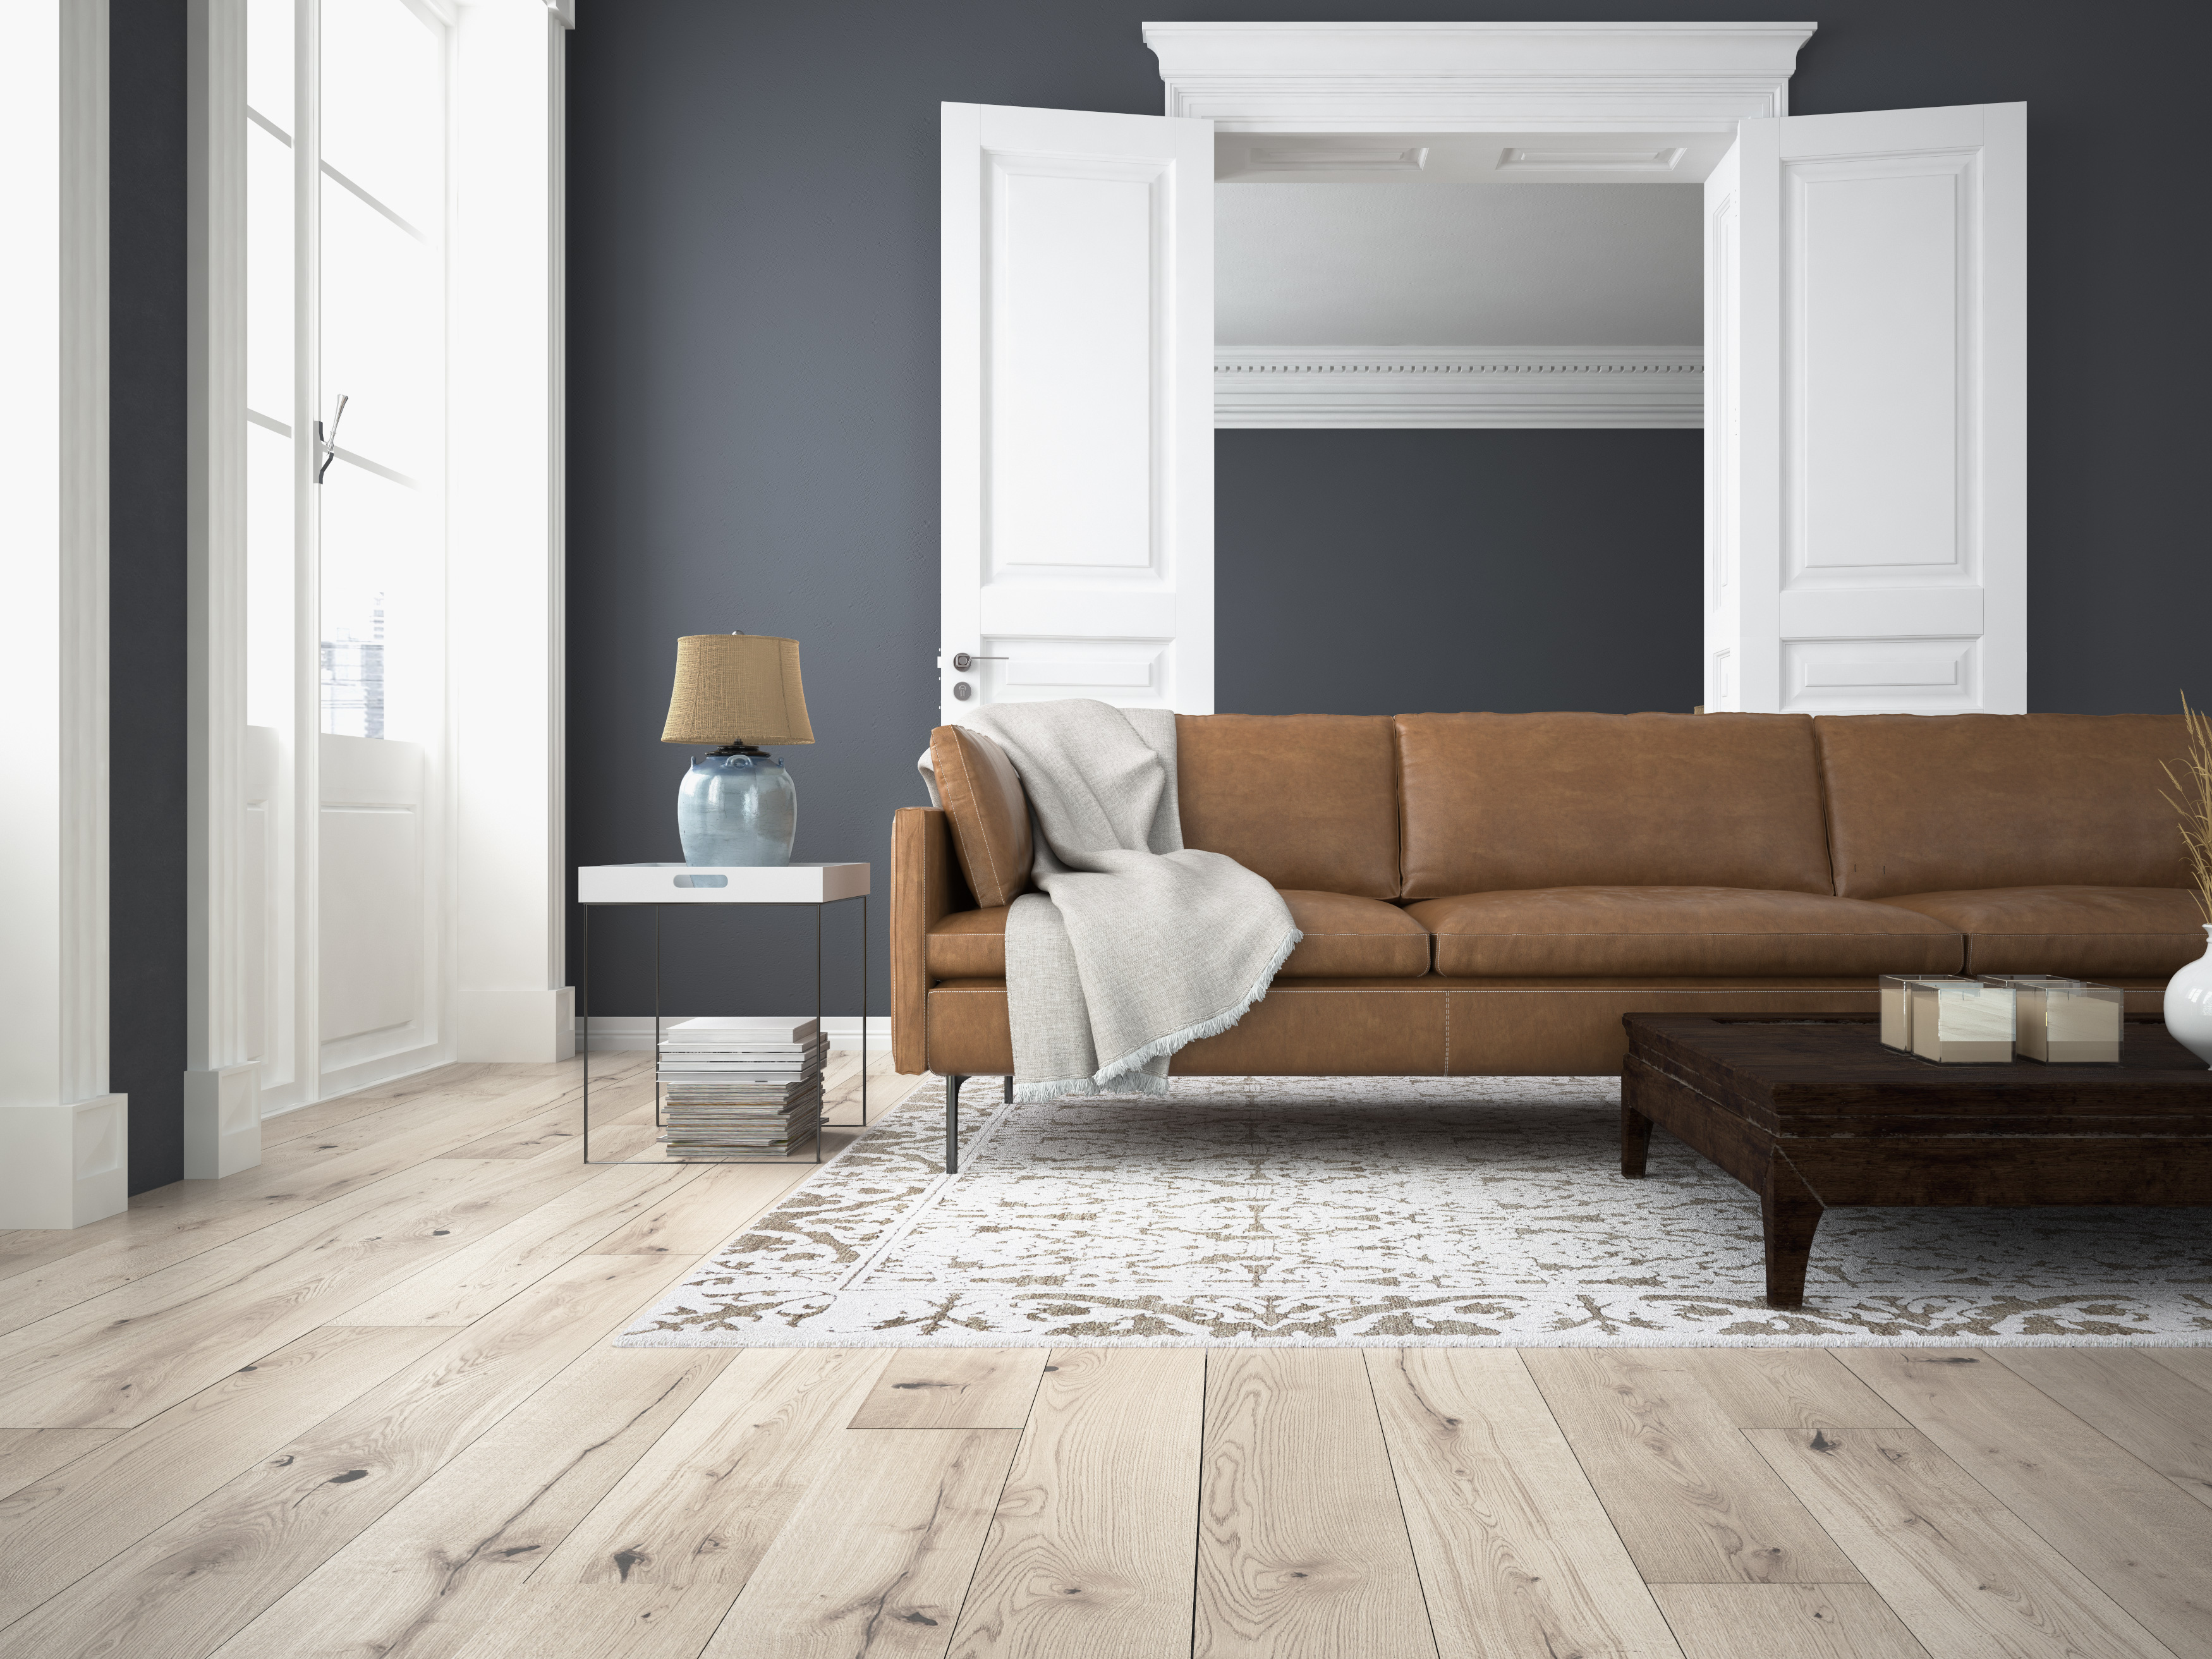 Living Room with Brown Couch and Light Wood Flooring